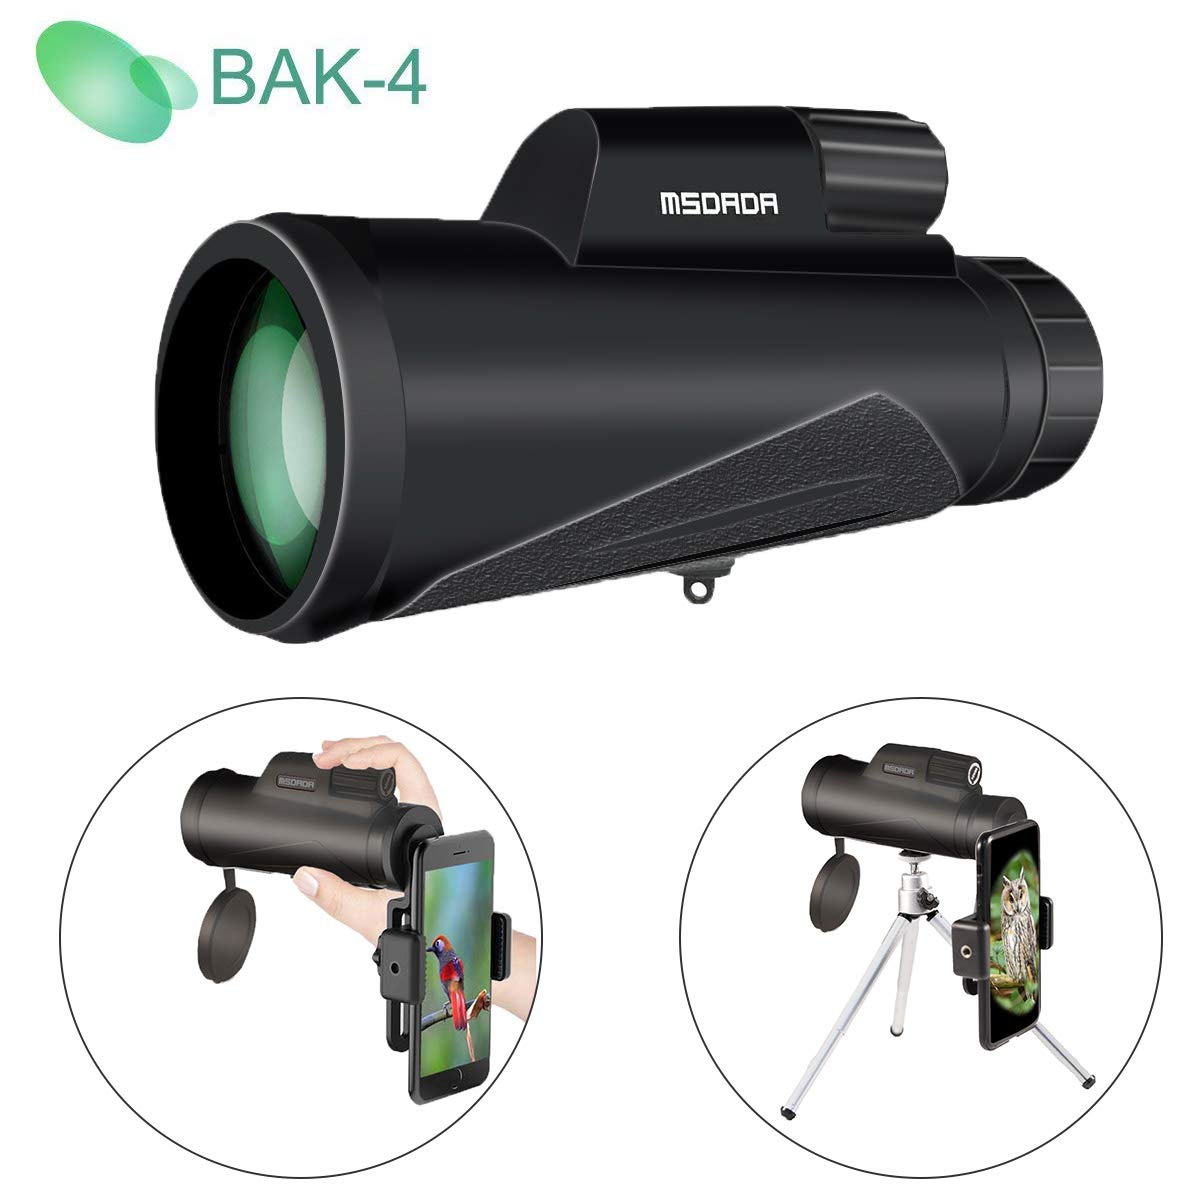 12X50 High-Powered Monocular Telescope for Phone, BAK4 Prism, Low Night Vision Waterproof Fog-Proof,Smartphone Adapter Tripod Holder Fit Adults Kids for Hiking, Hunting, Camping, Birding, Concert